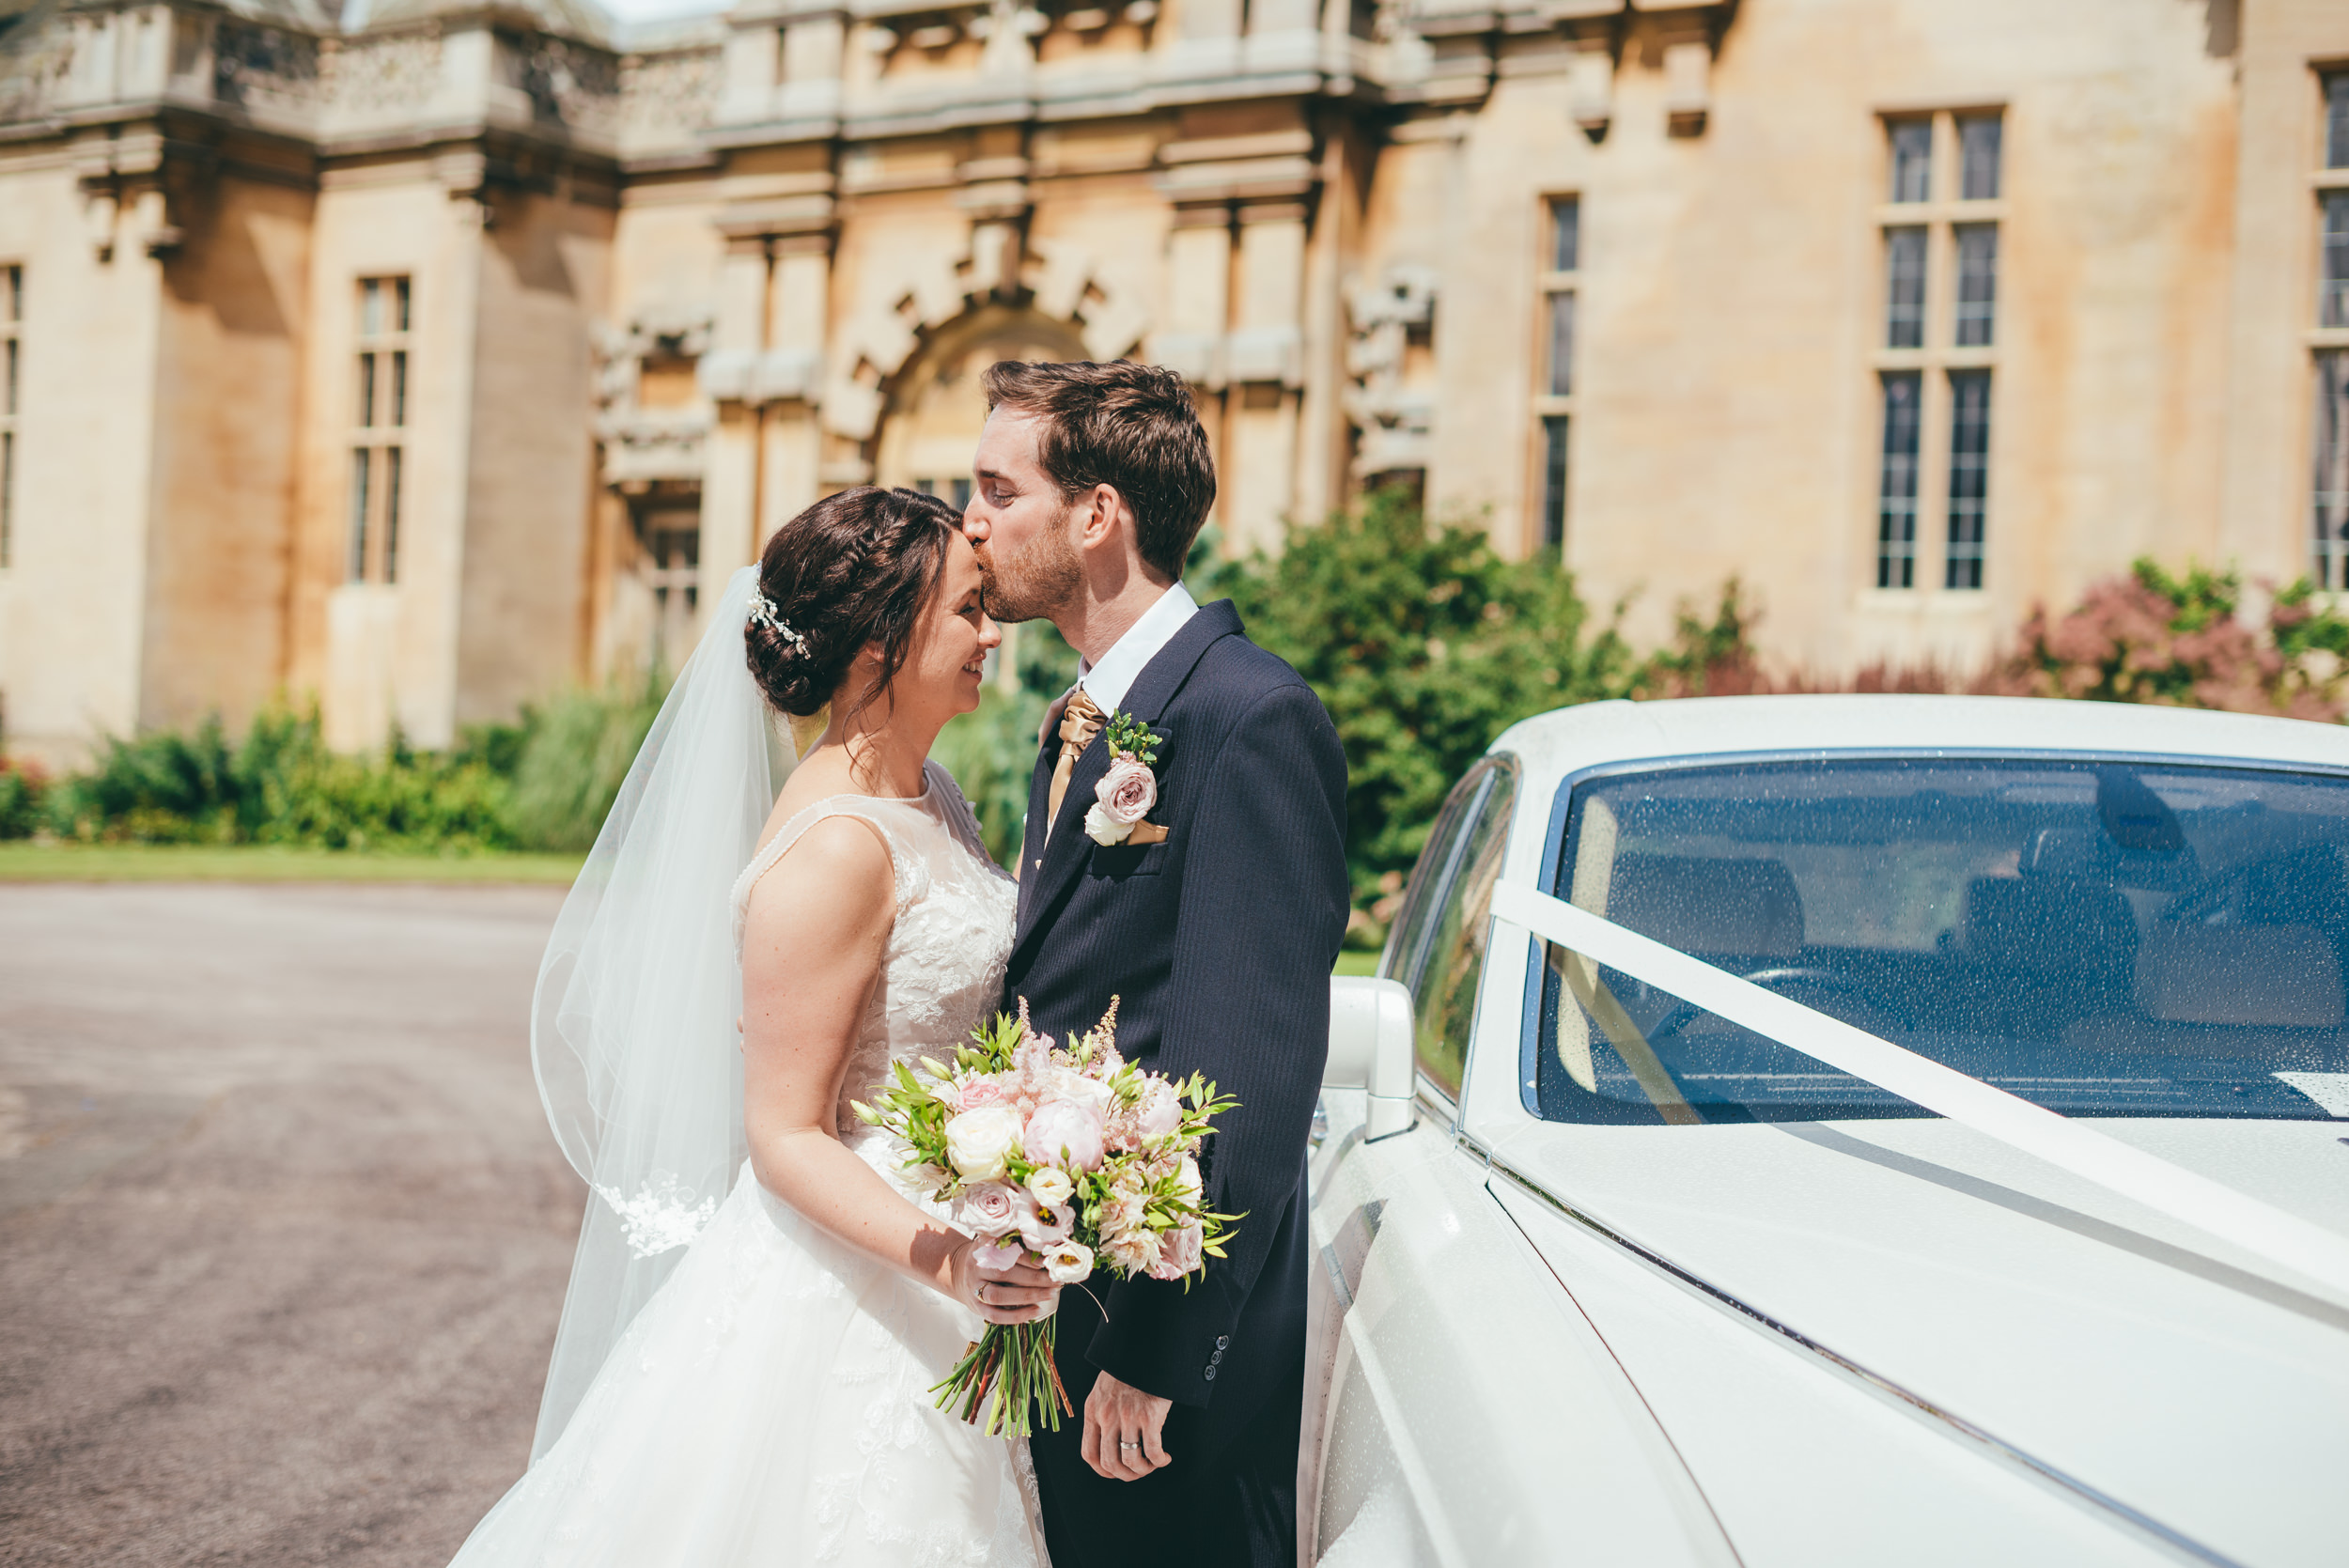 Bride and groom kissing standing next to their Rolls Royce wedding car at Harlaxton Manor